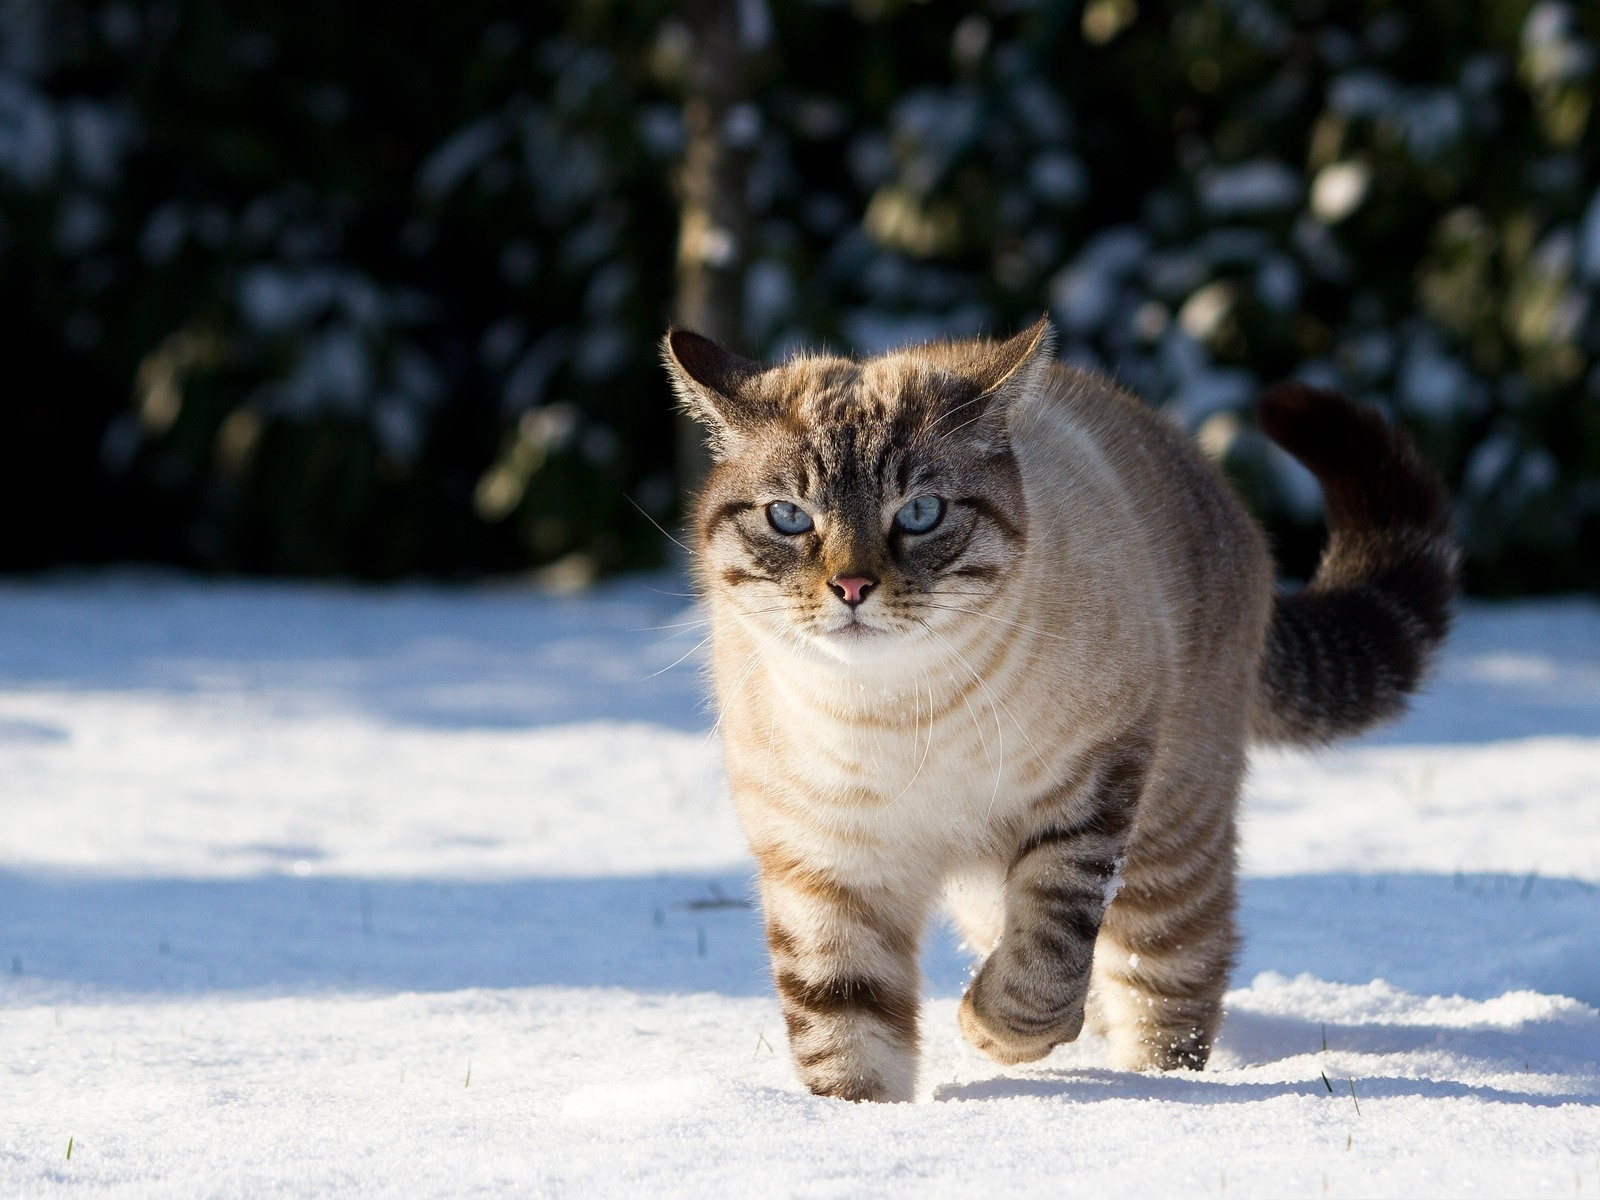 click to free download the wallpaper--Cute Cat Photography, Kitten in the Snow, Strong Legs as Support 1600X1200 free wallpaper download